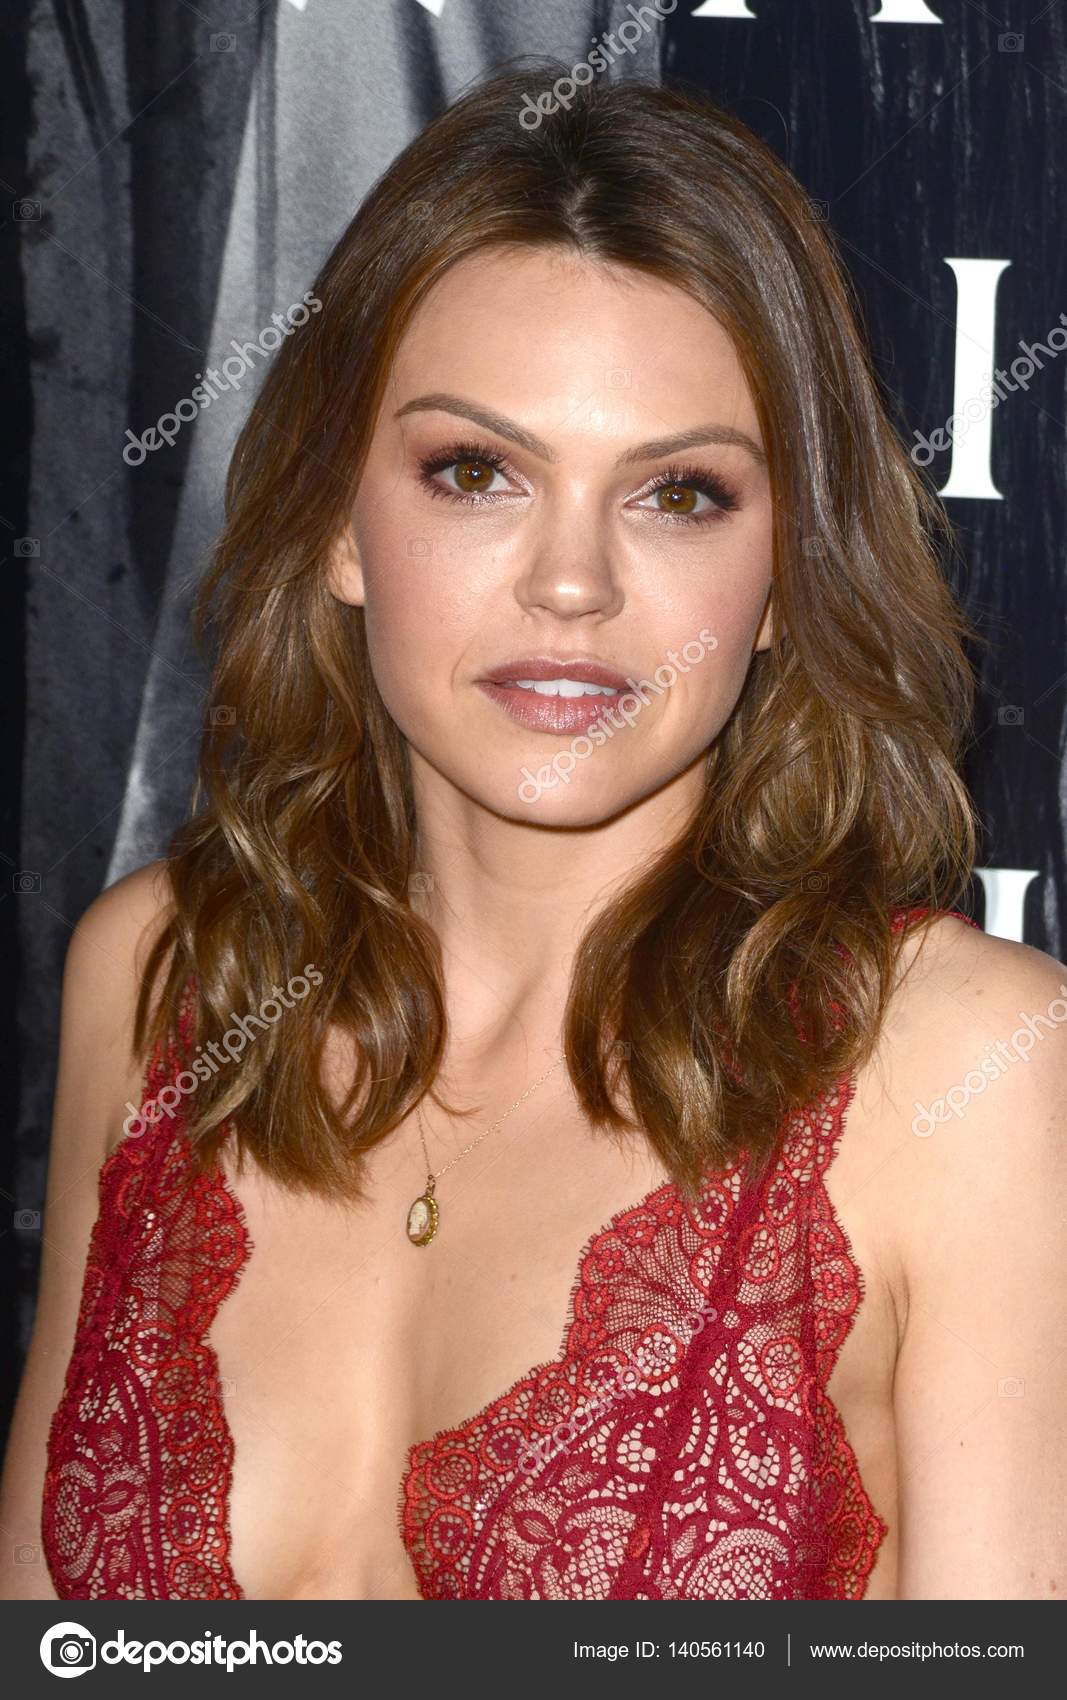 Aimee Teegarden nudes (81 gallery), hacked Topless, Twitter, swimsuit 2016